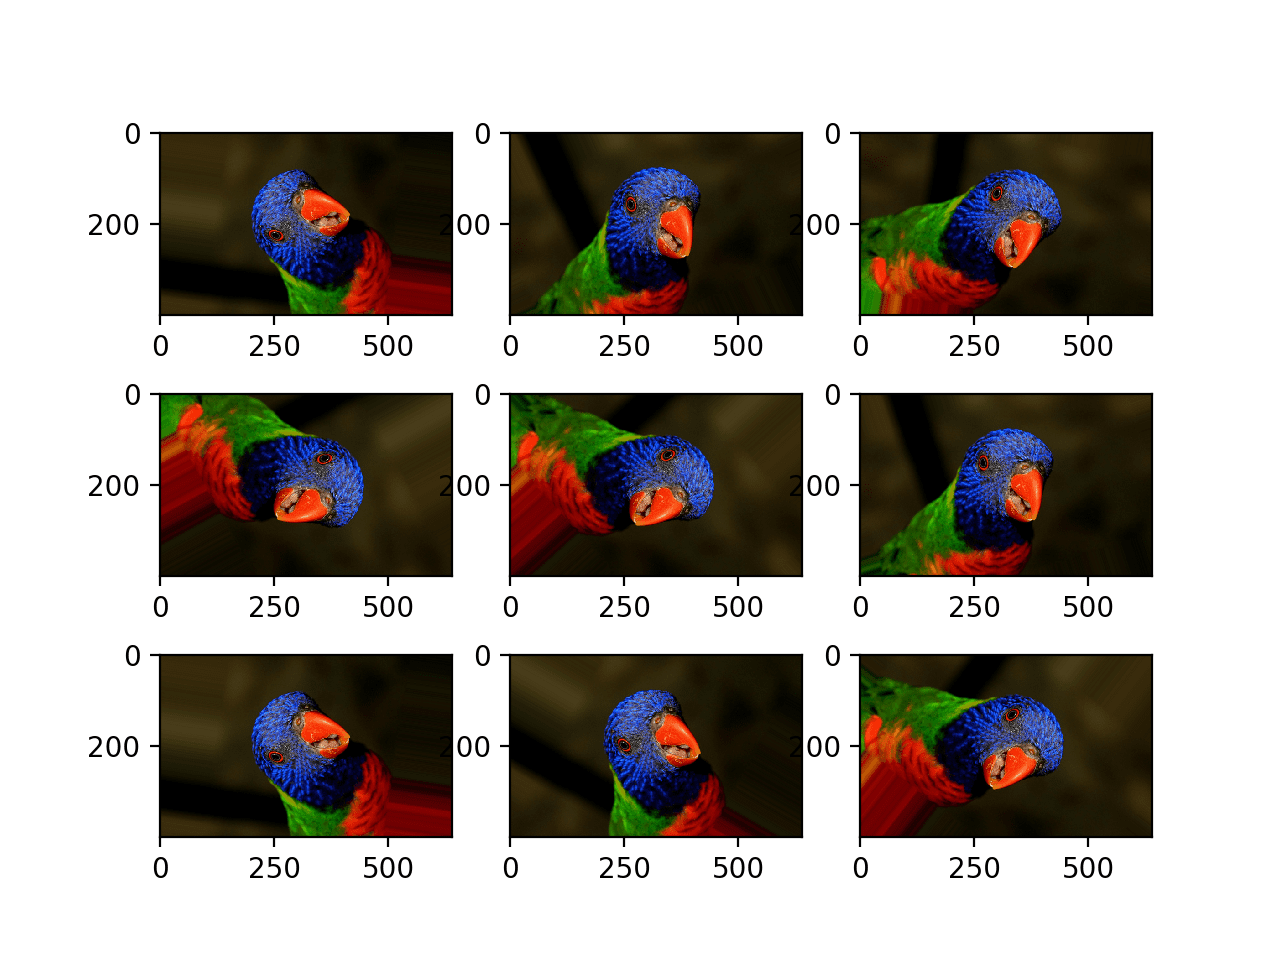 Plot of Images Generated With a Random Rotation Augmentation